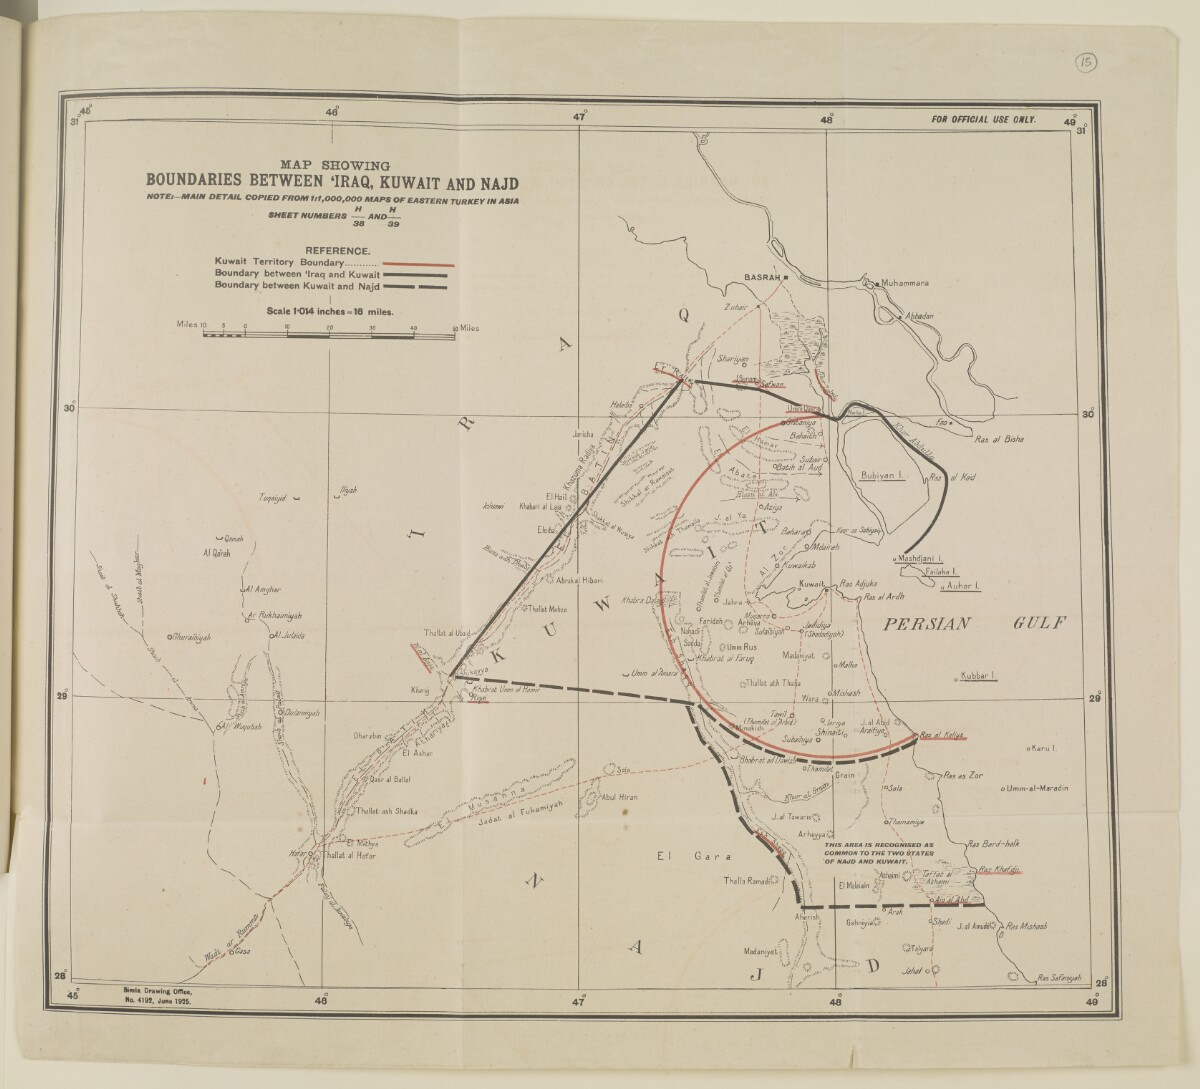 'Map showing boundaries between Iraq, Kuwait and Najd' [‎15r] (1/2)